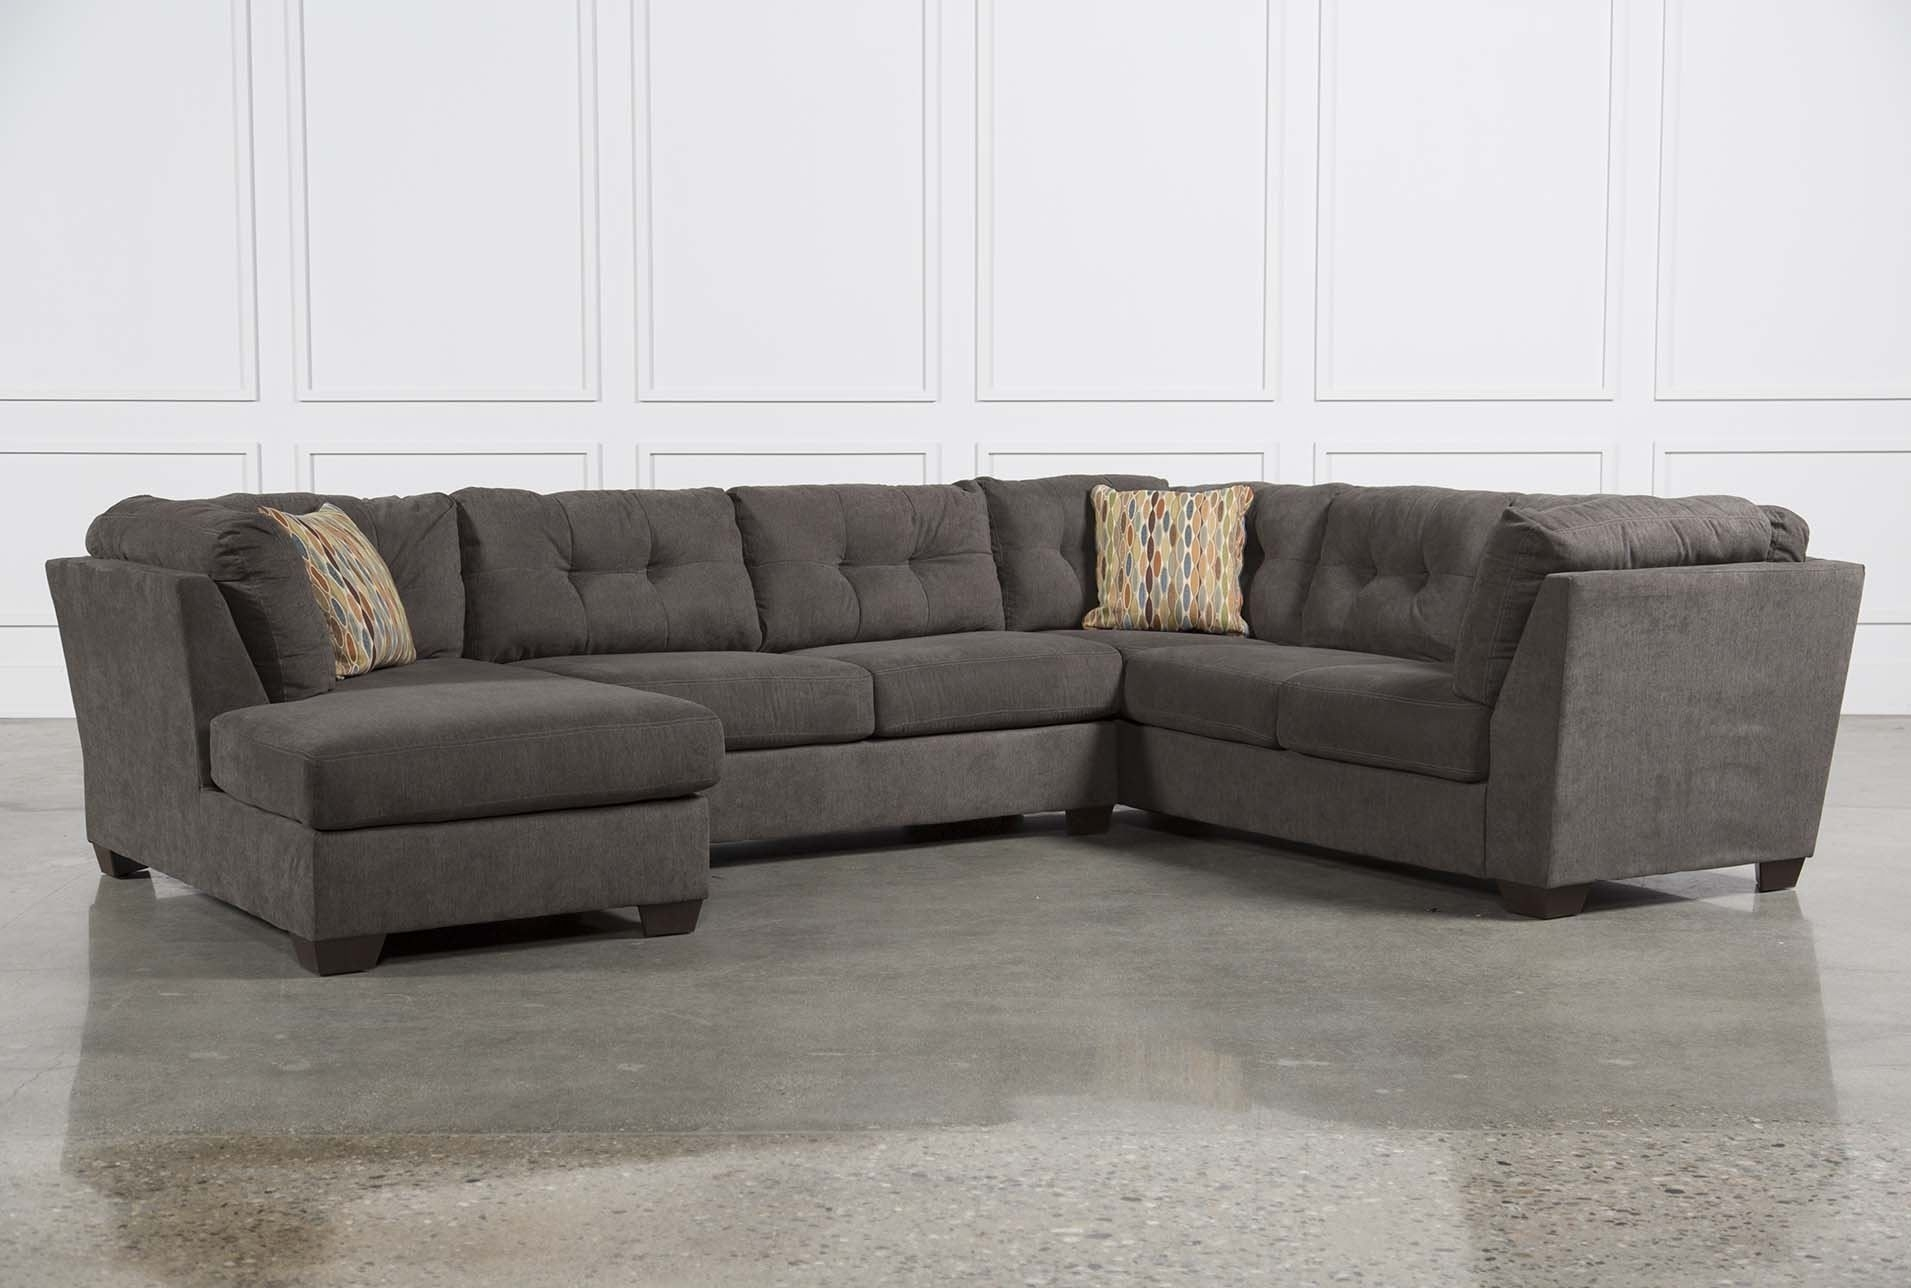 Delta City Steel 3 Piece Sectional W/sleeper | Furniture | Pinterest inside Norfolk Chocolate 3 Piece Sectionals With Raf Chaise (Image 11 of 30)